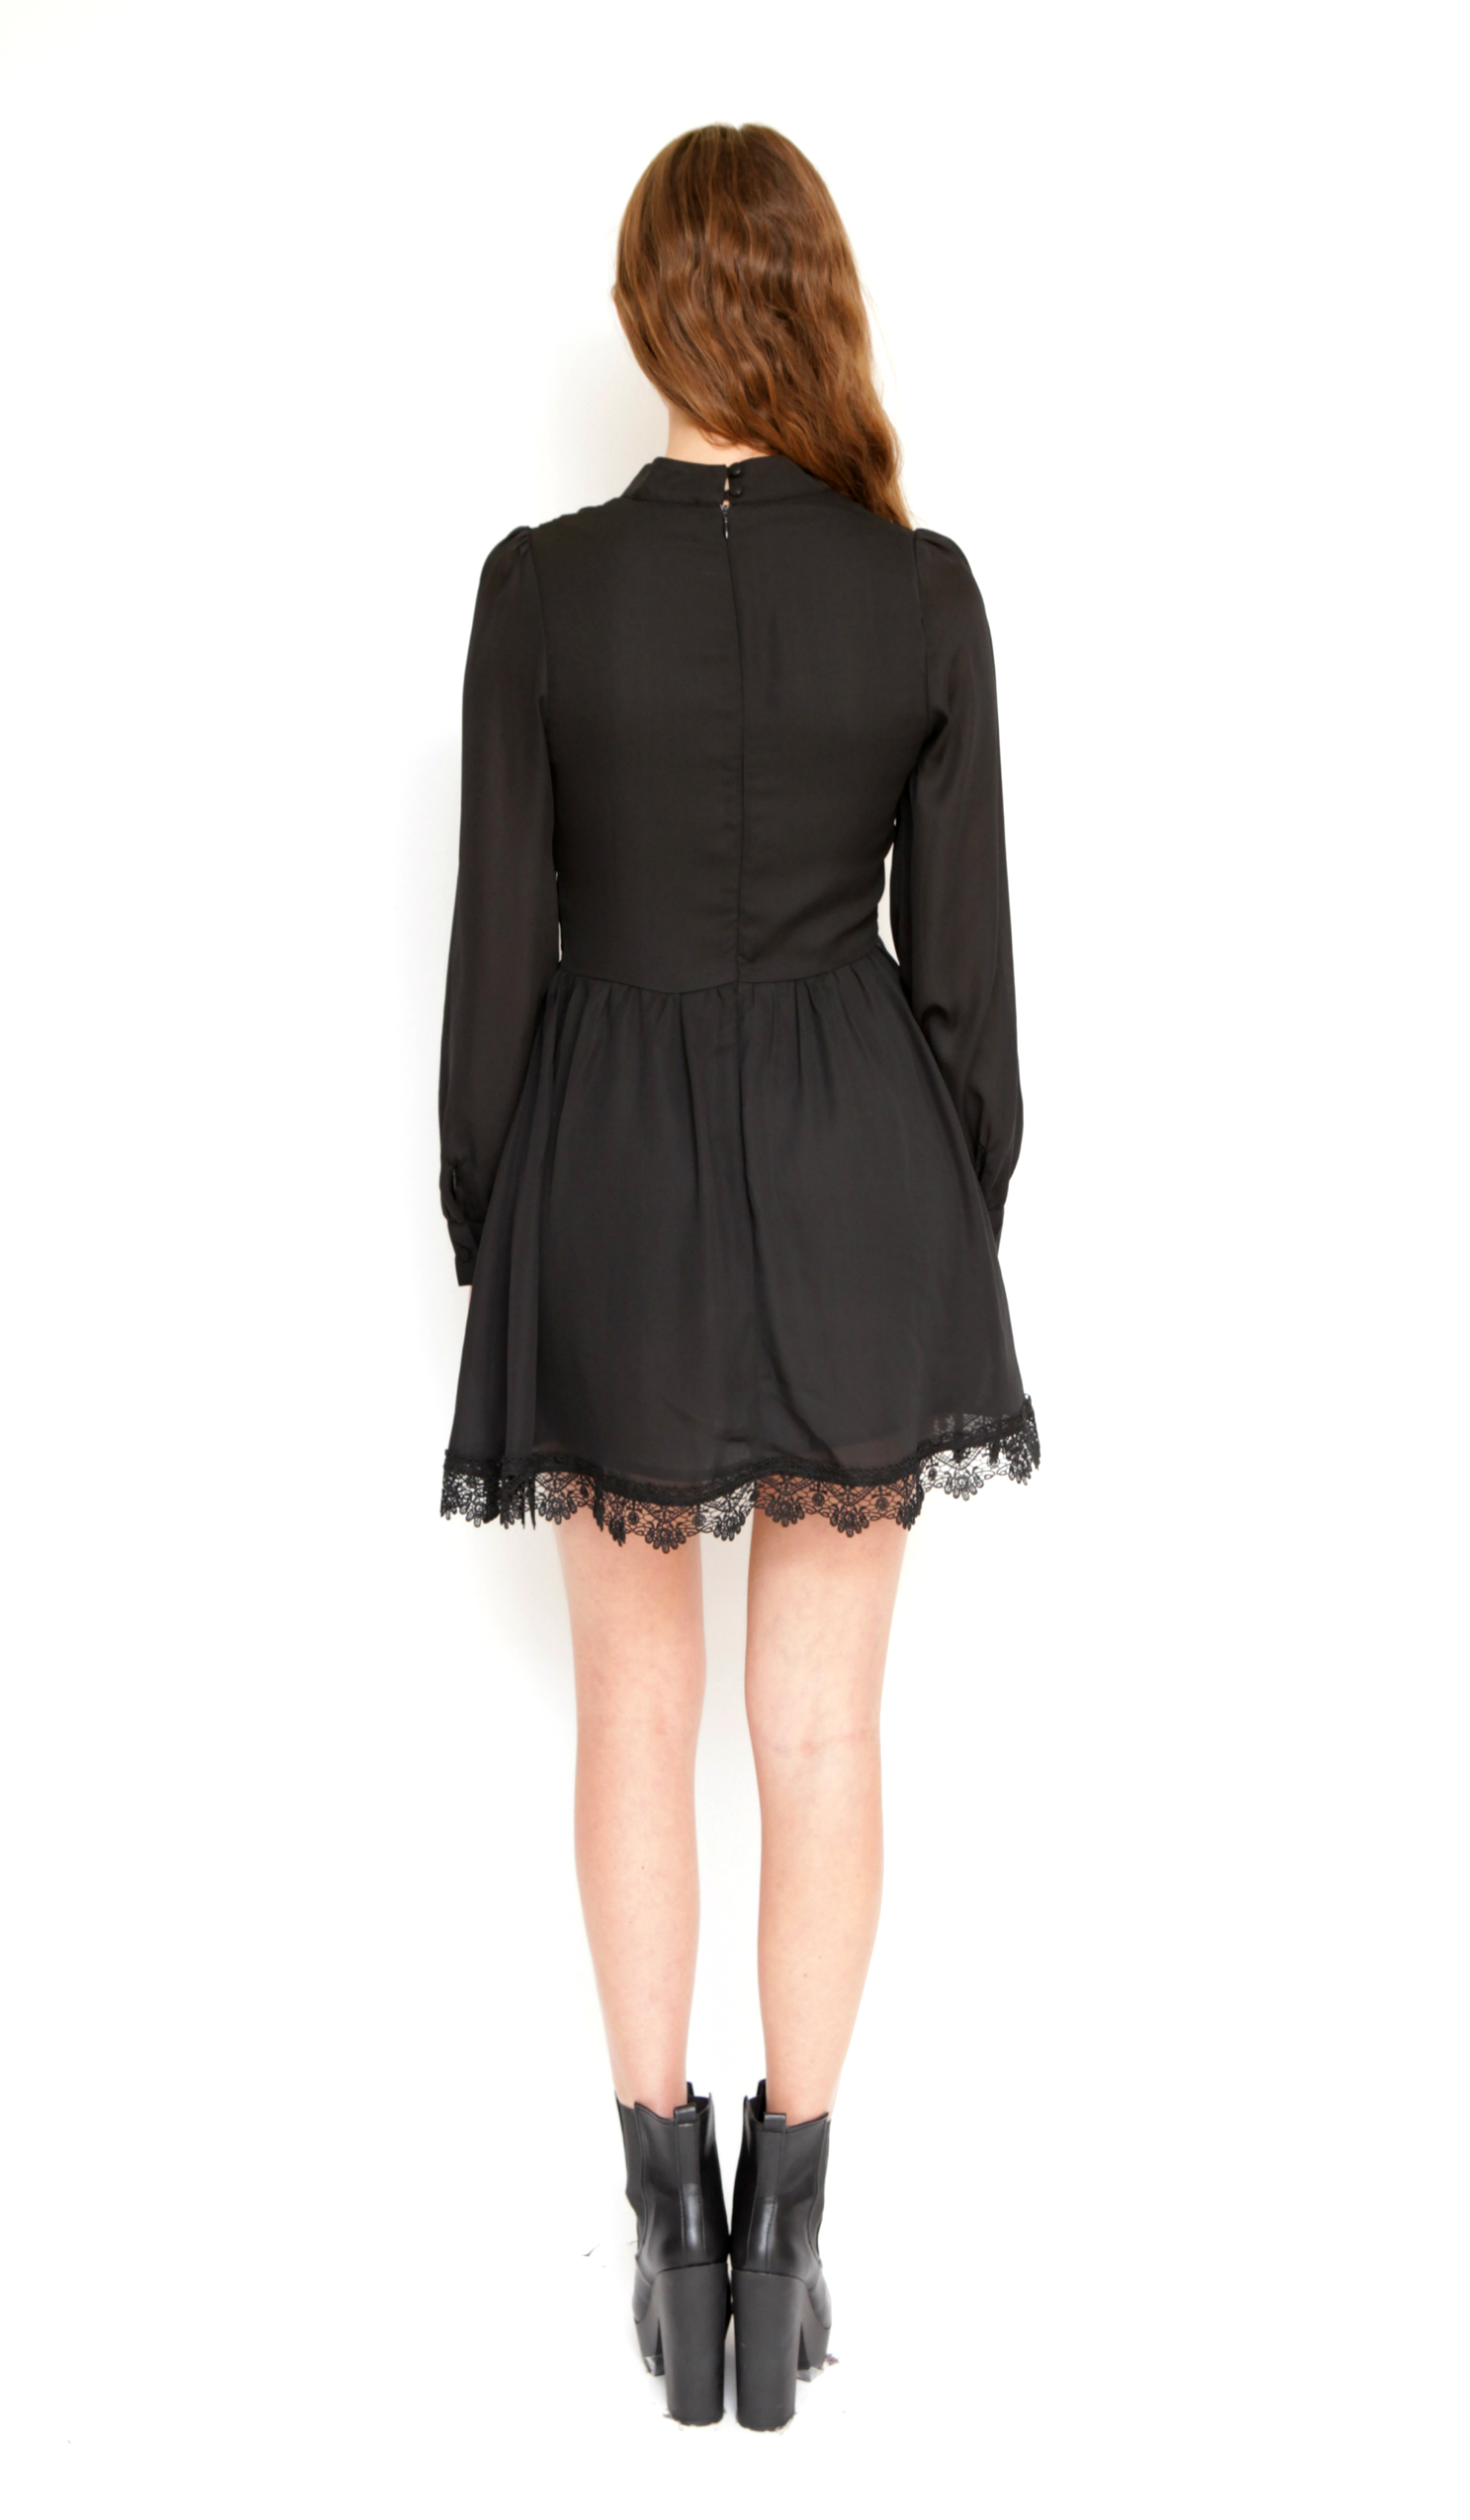 Black high neck chiffon dress with embroidered lace trim